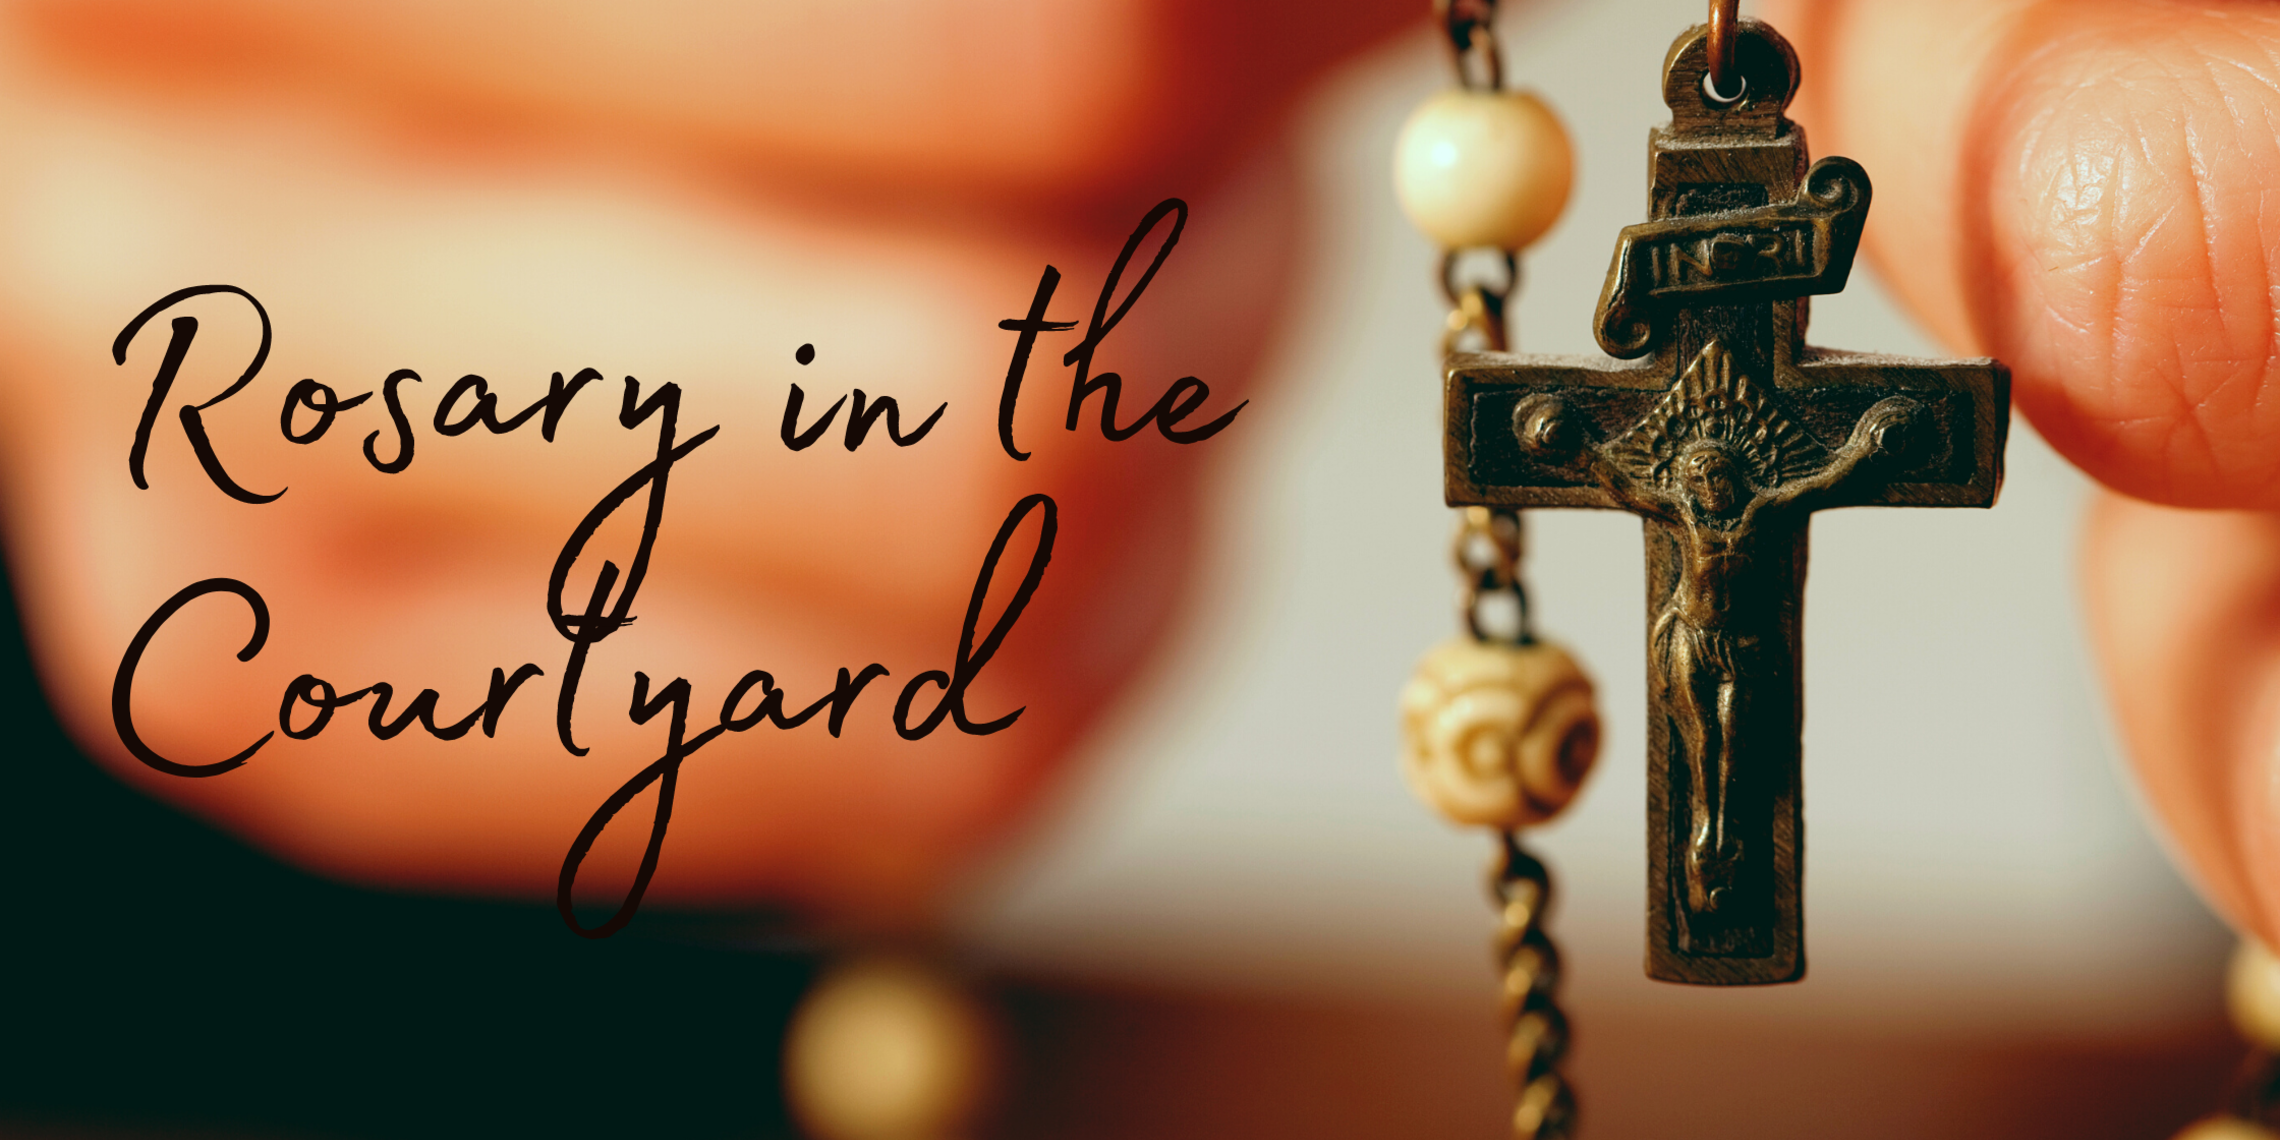 Rosary In The Courtyard